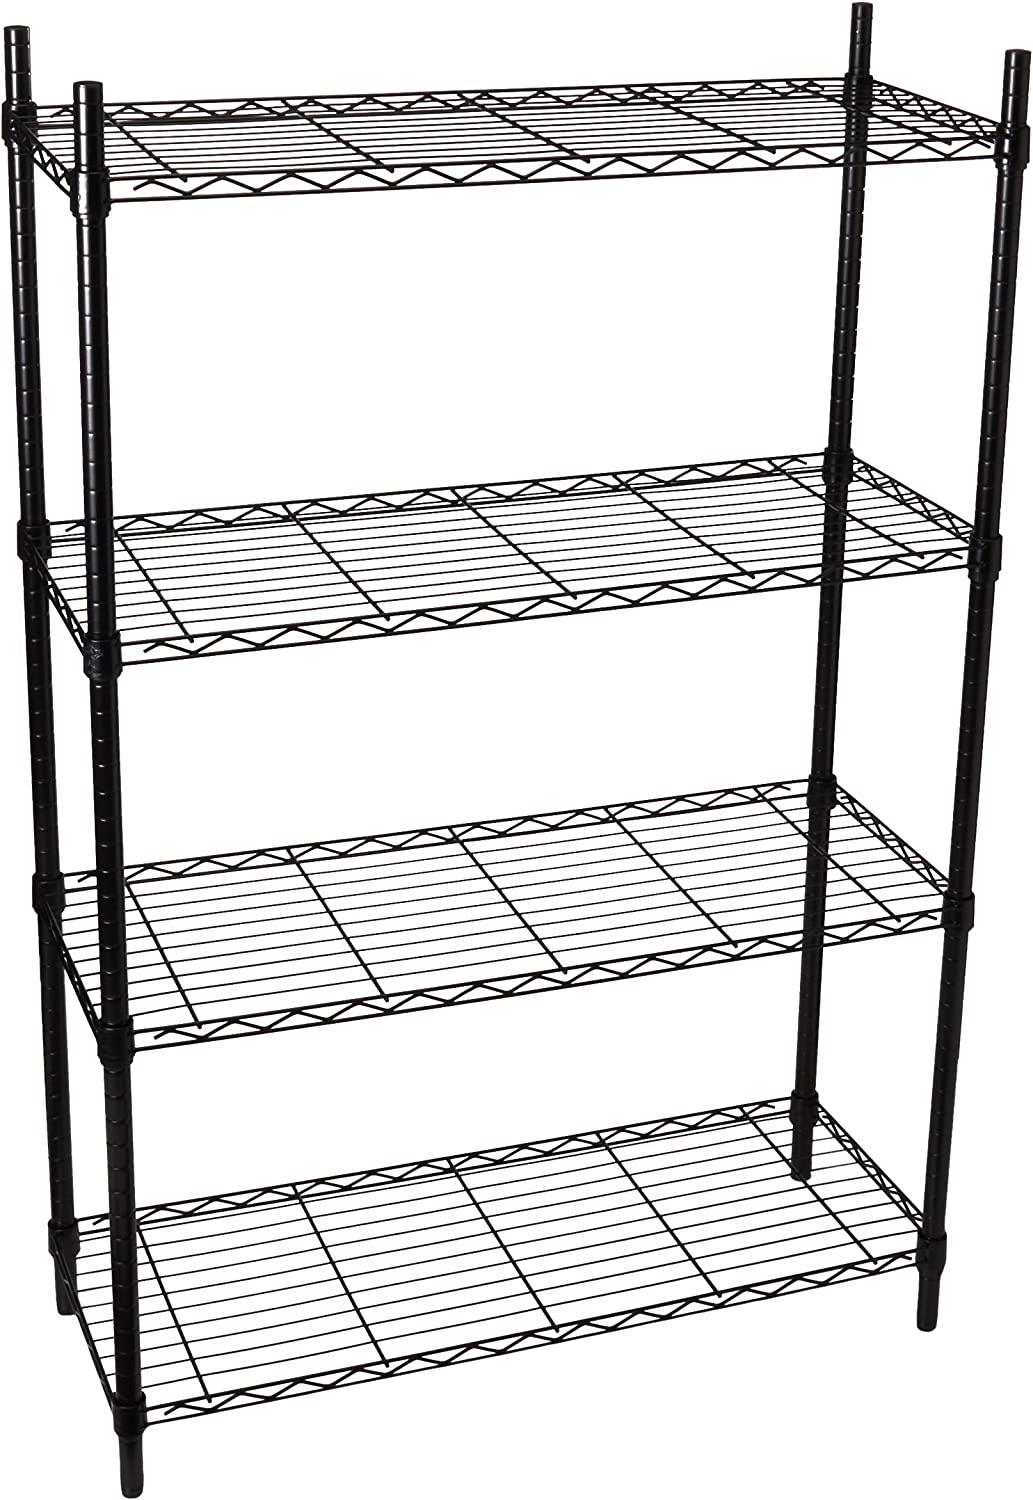 Honey-Can-Do SHF-01908 Adjustable Storage Shelving Unit, 250-Pounds Per Shelf, Black, 4-Tier, 36Lx14Wx54H